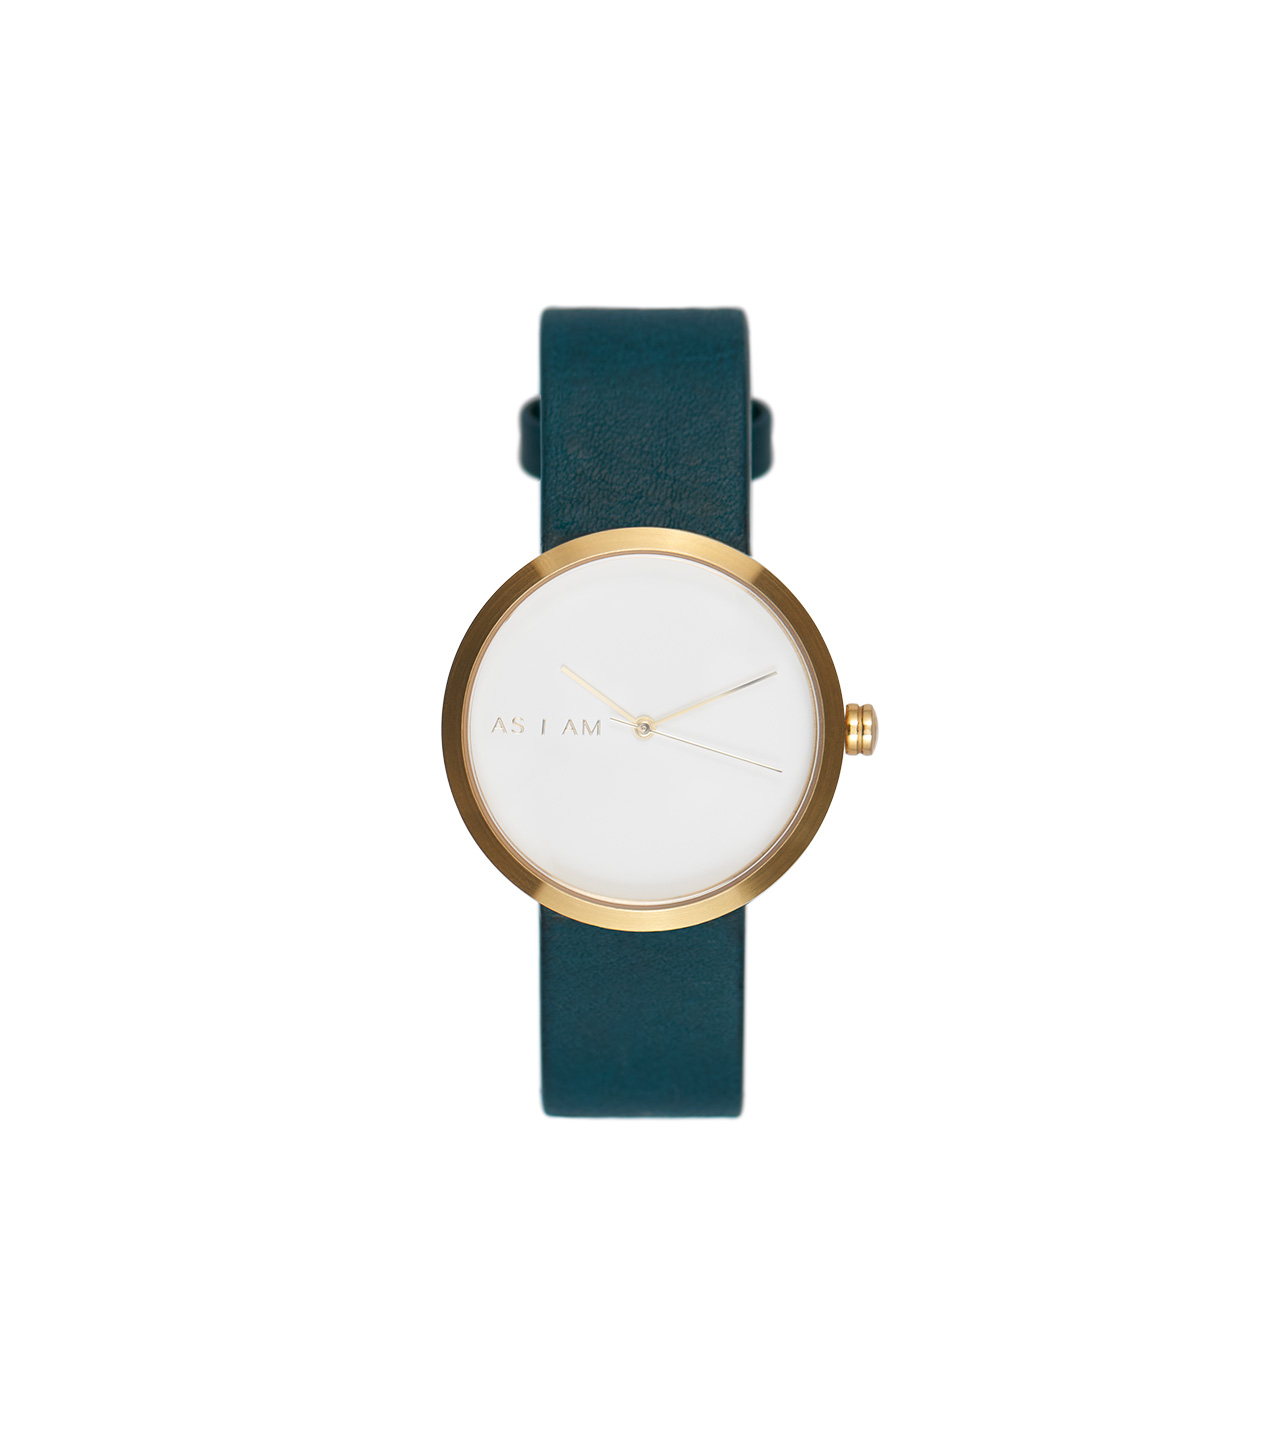 AS I AM - Watches for Women